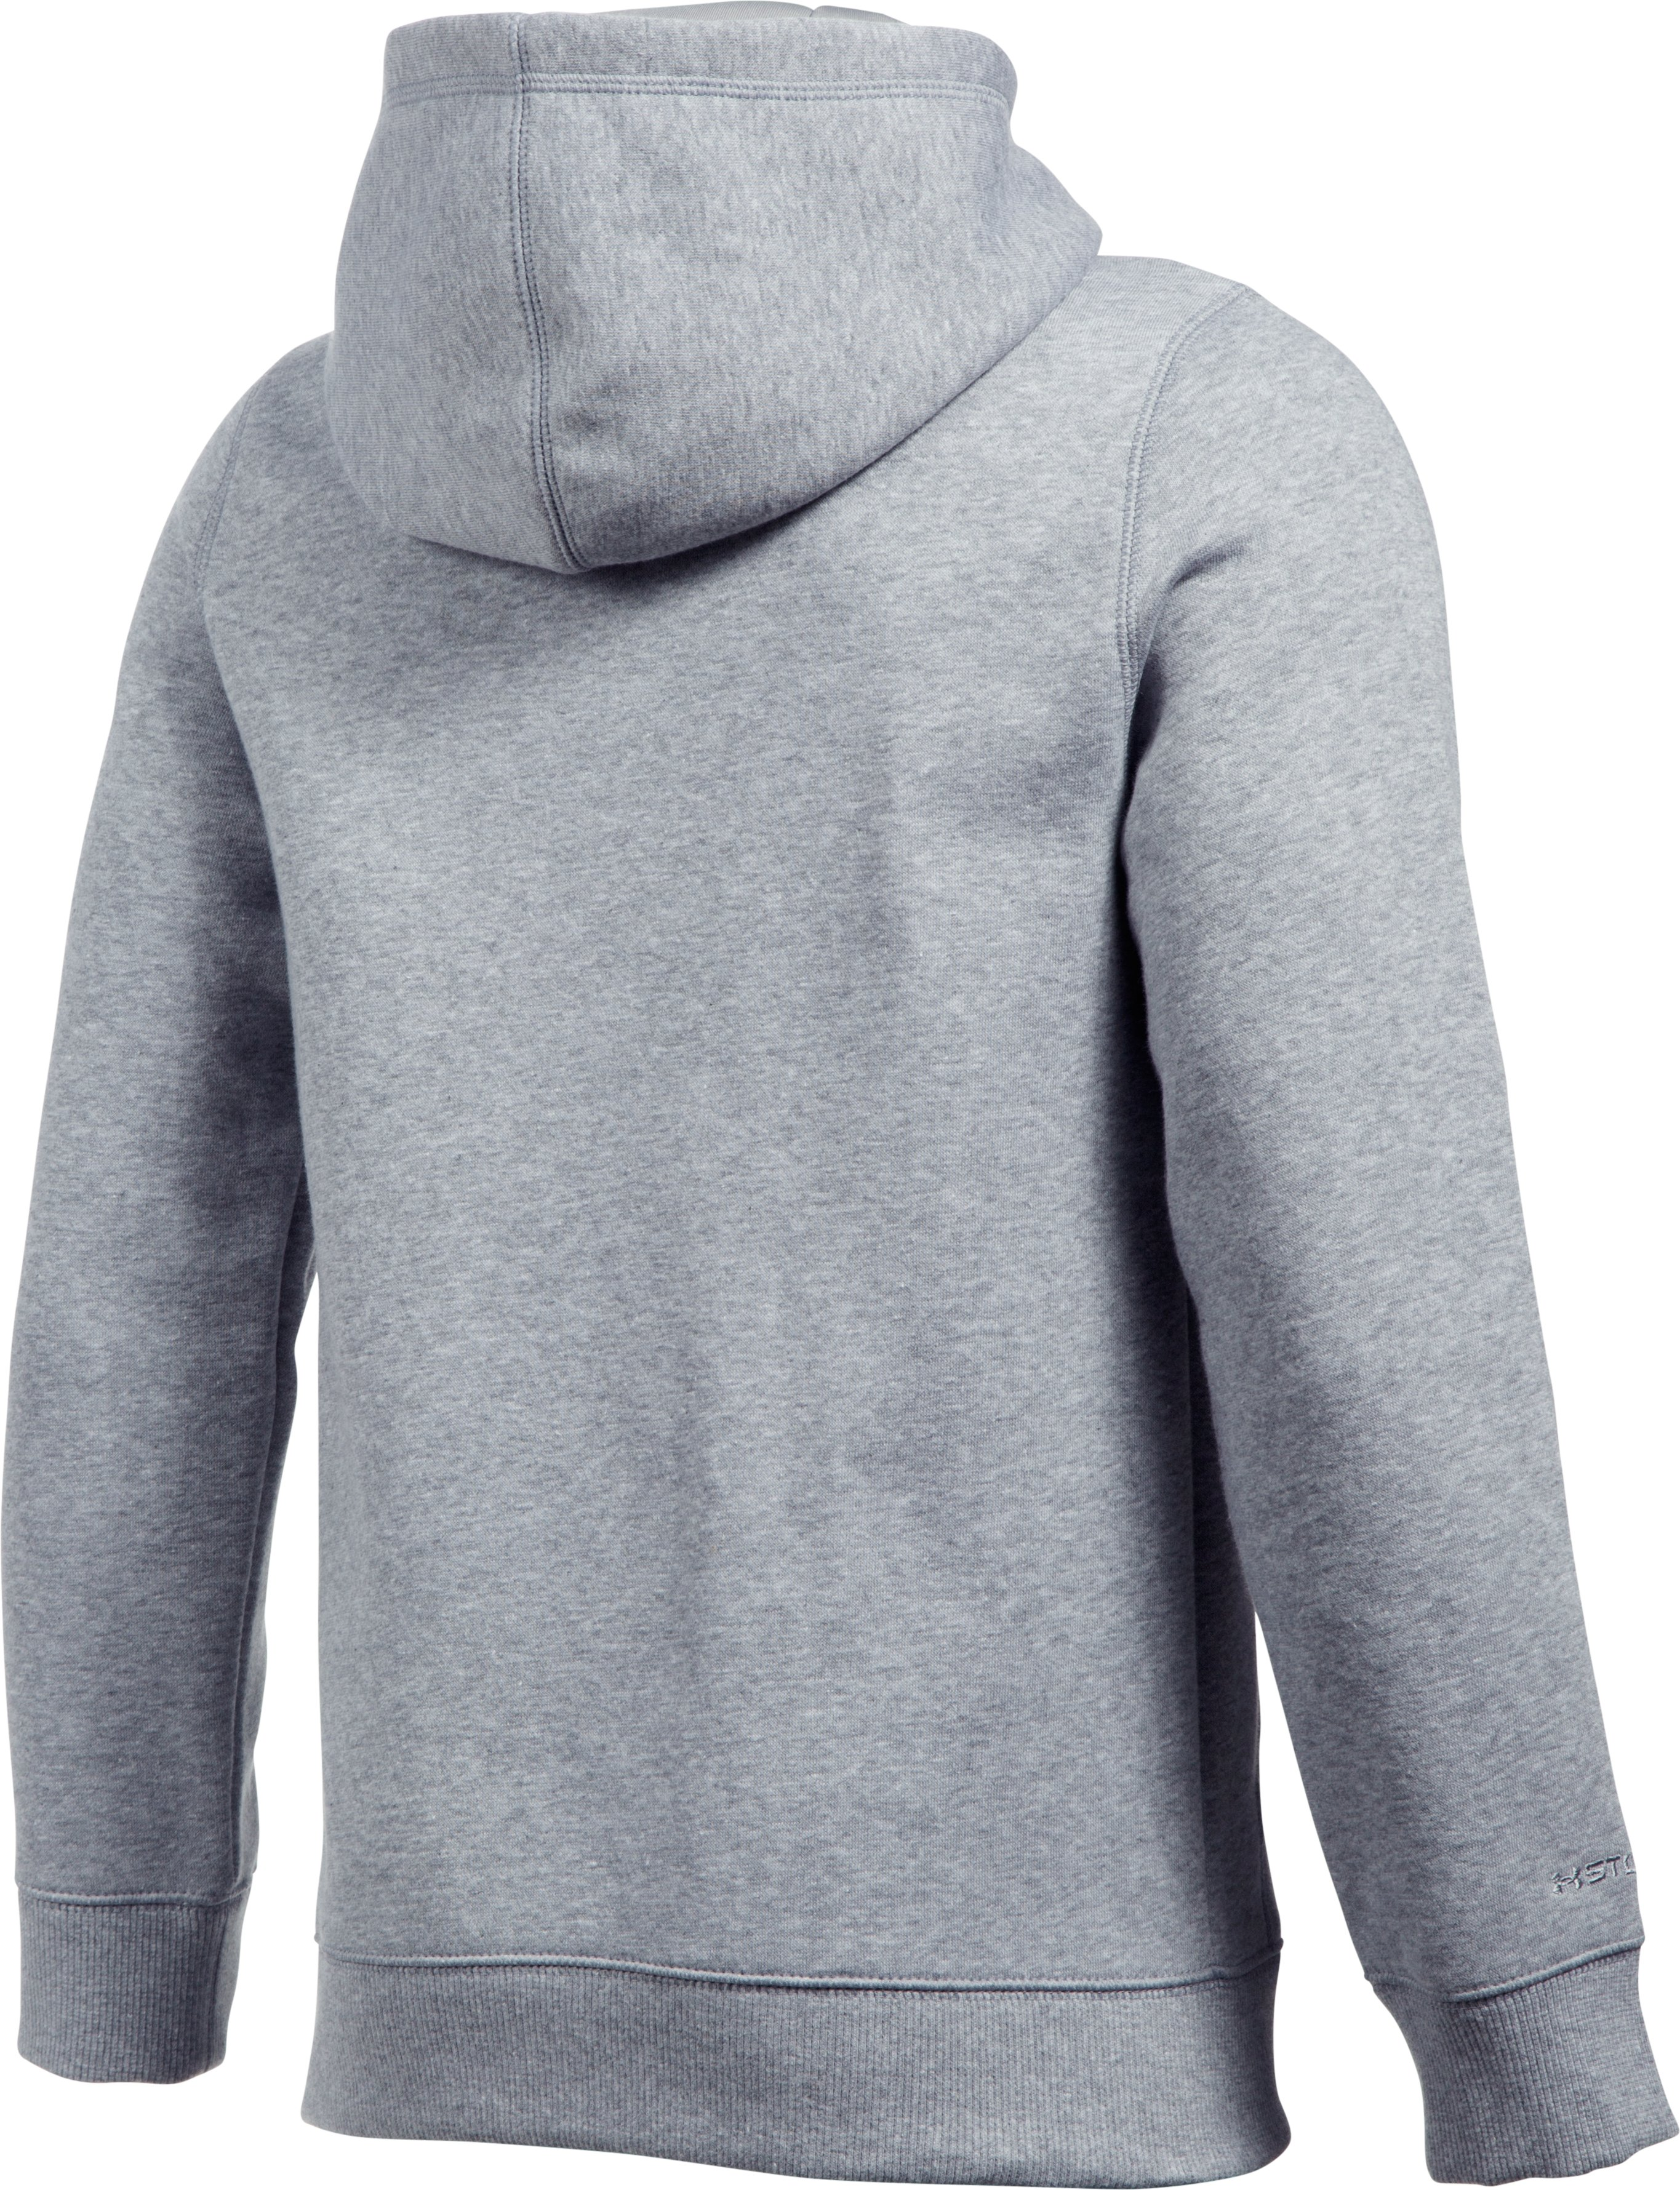 Boys' UA Freedom Logo Rival Hoodie, True Gray Heather,